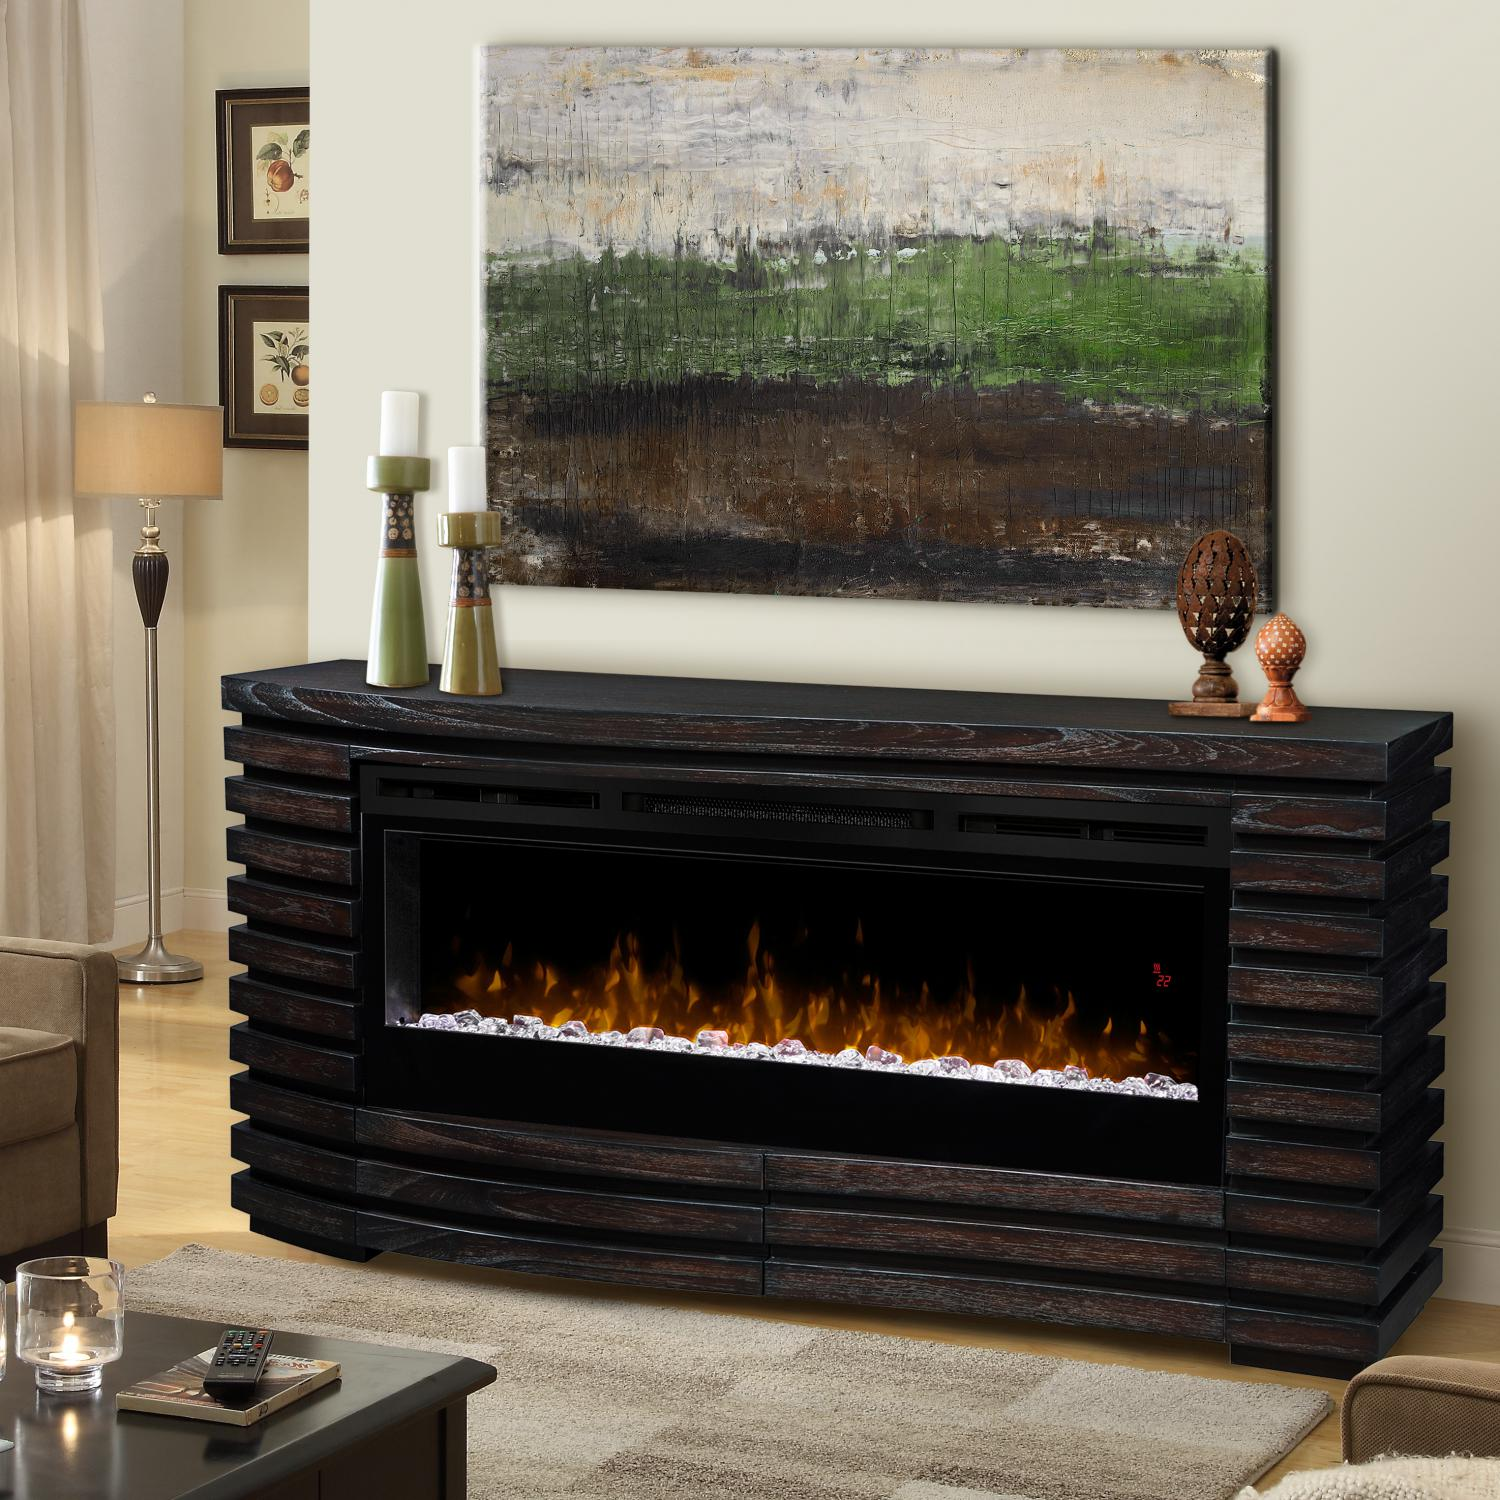 Dimplex Prism Elliot 70-Inch Electric Fireplace Mantel - ...